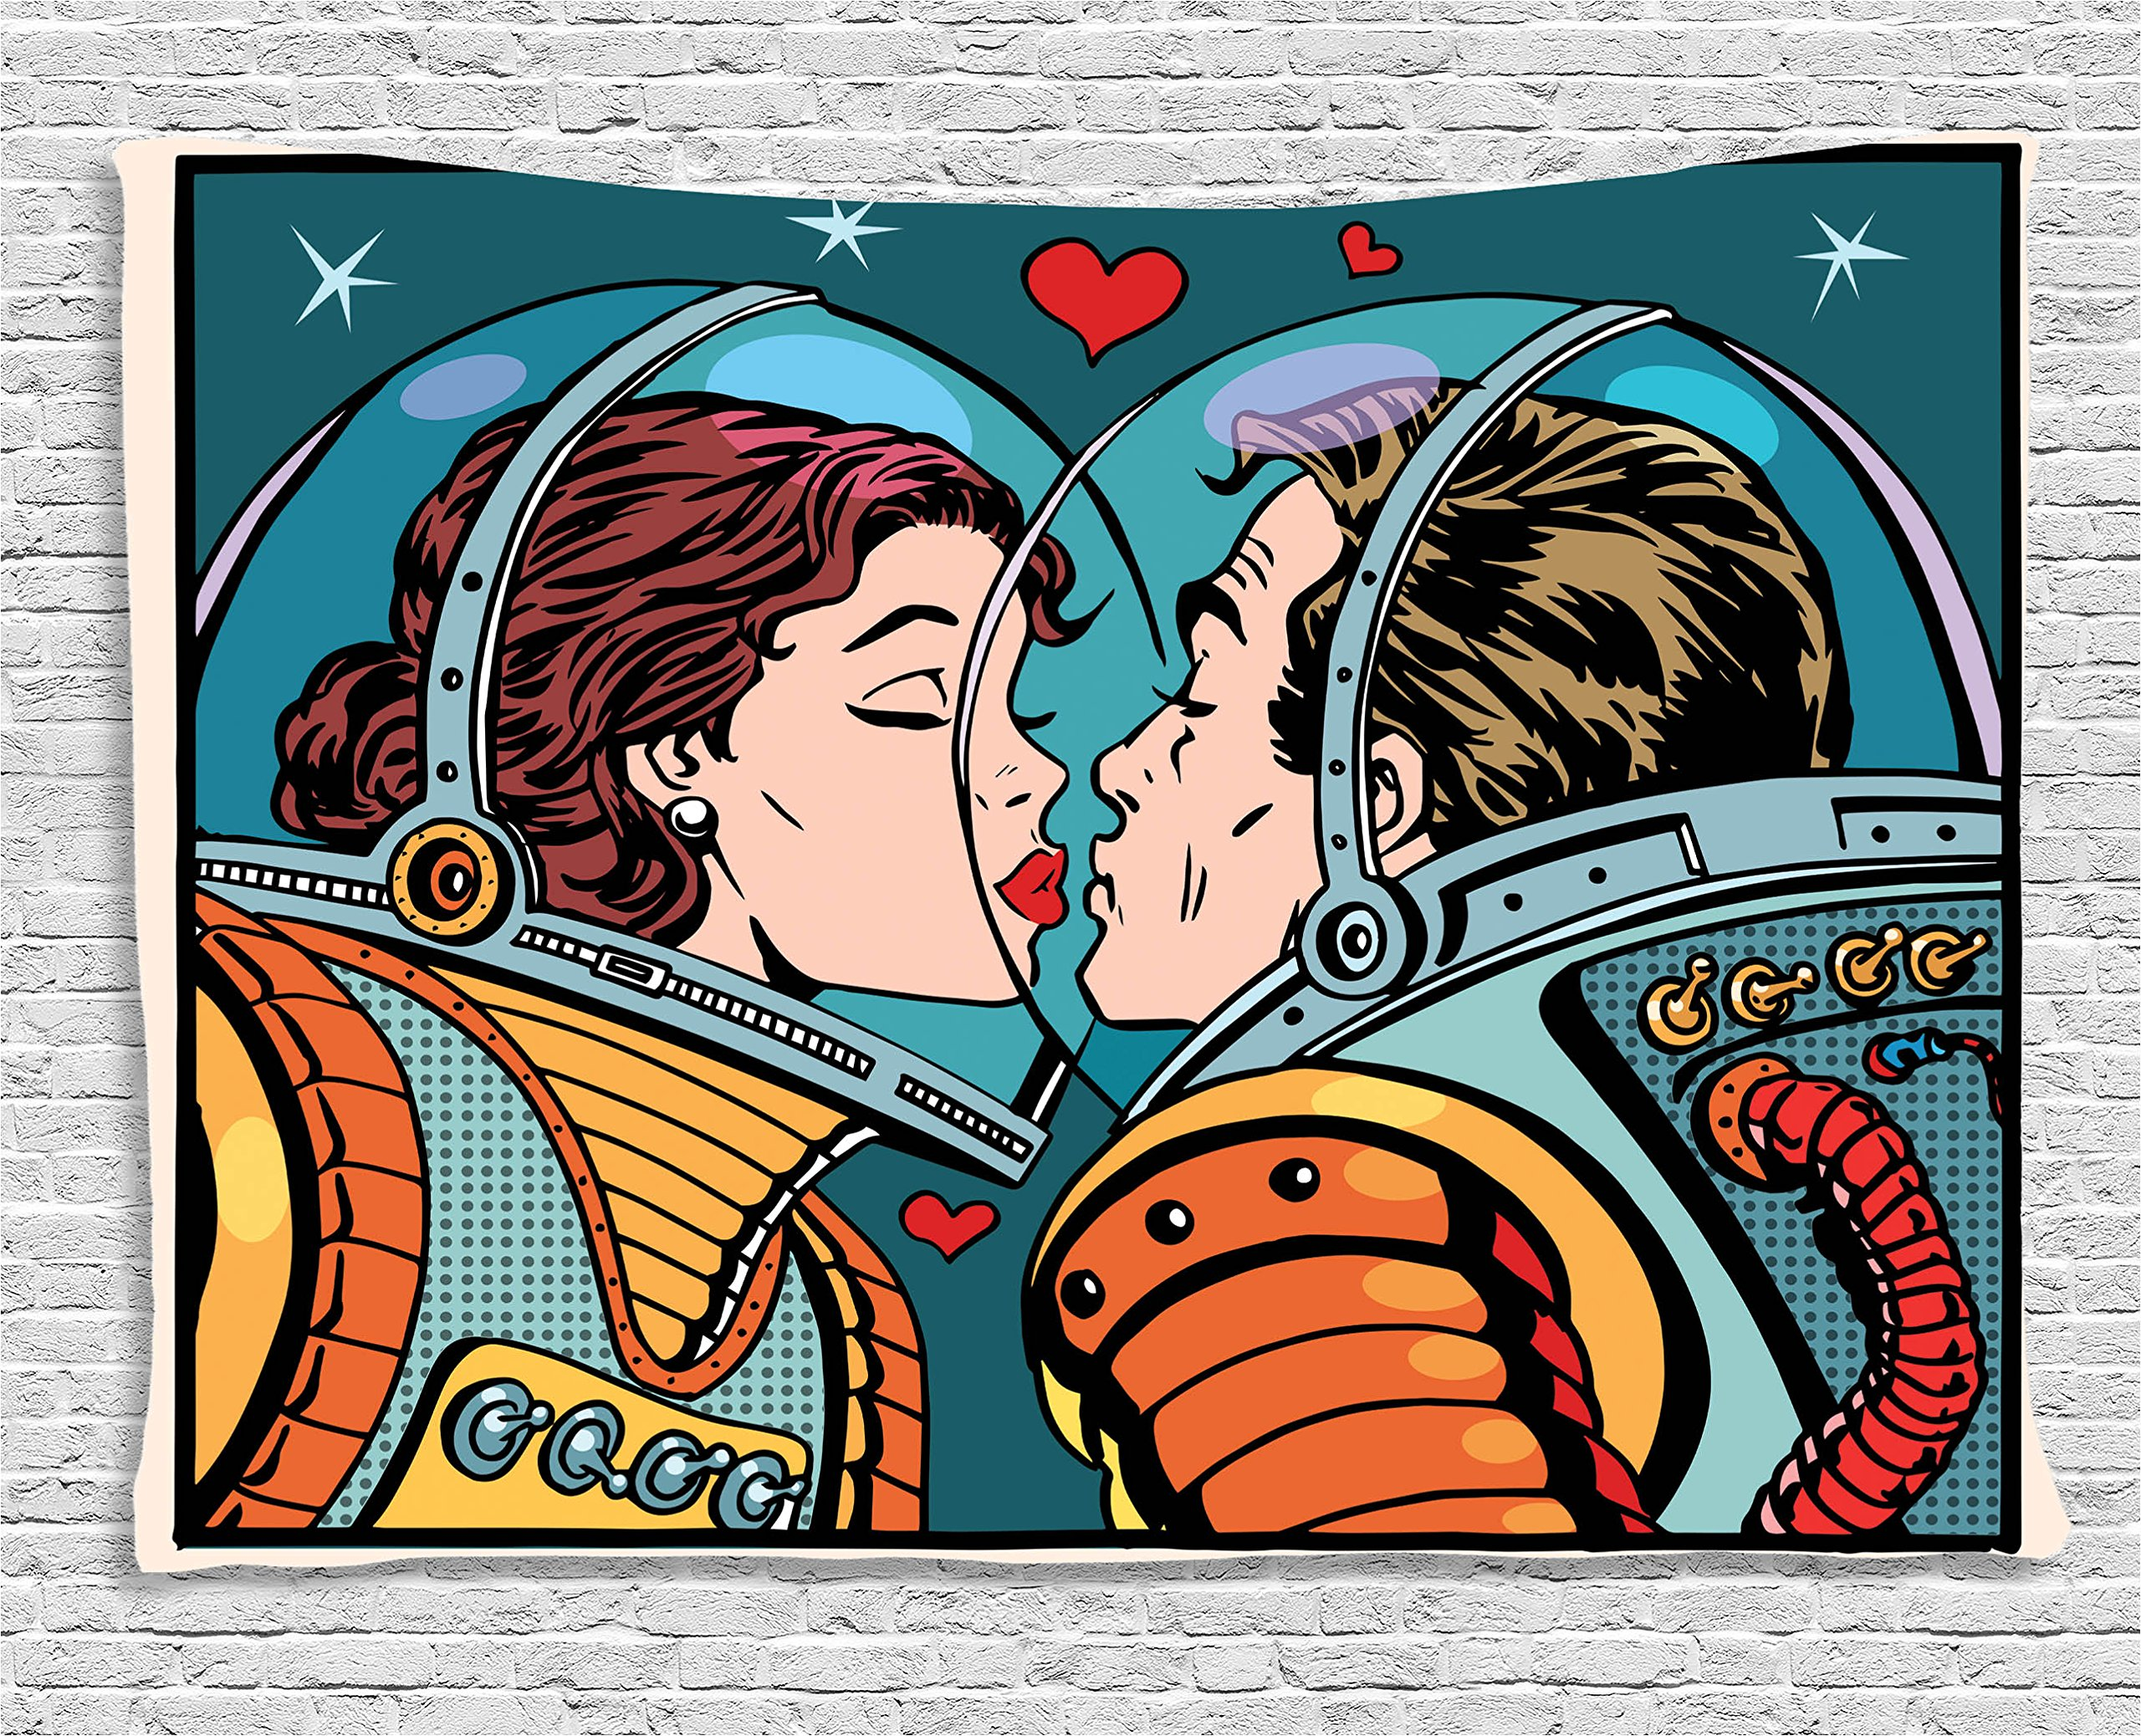 Ambesonne Love Decor Tapestry, Space Man and Woman Astronauts Kissing Science Cosmos Fantasy Couple Pop Art Style Artful Print, Wall Hanging for Bedroom Living Room Dorm, 60 W X 40 L, Multicolor